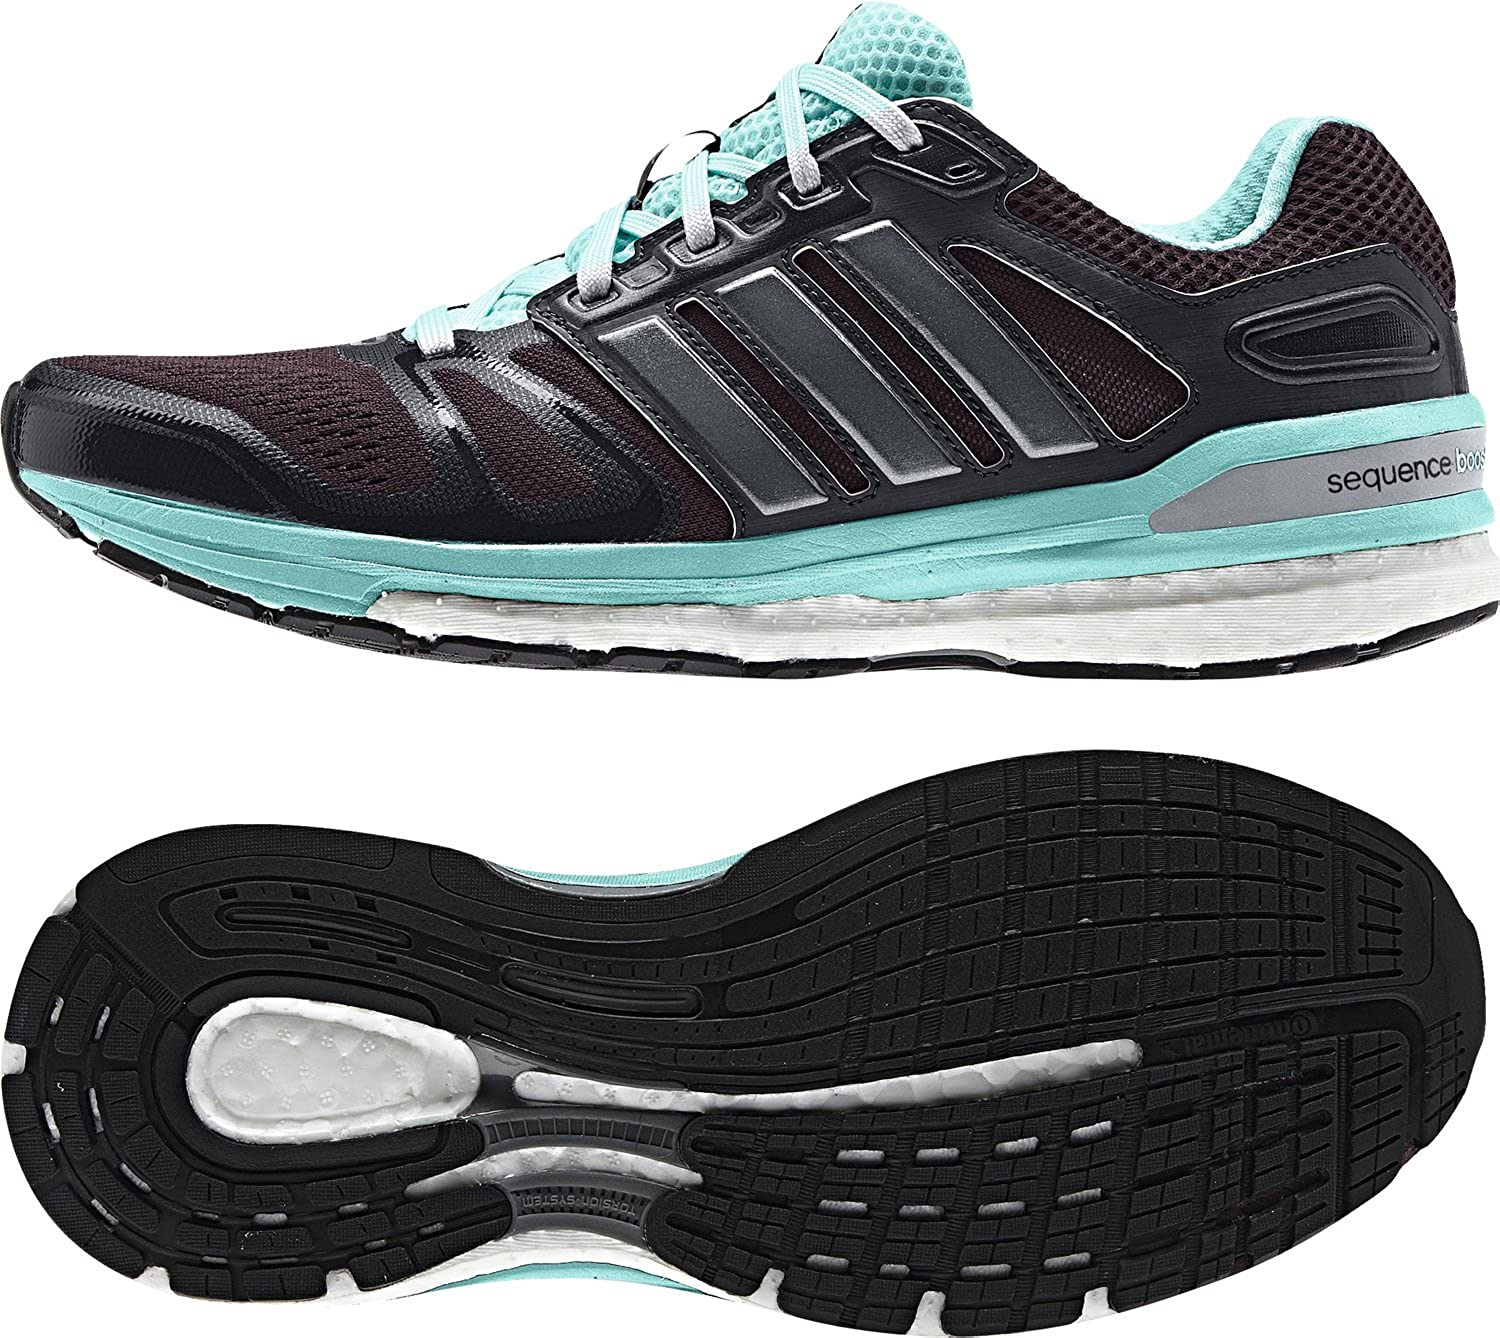 63cae1ee35f8f adidas Women s Supernova Sequence 7 Running Shoes Grey Size  5.5   Amazon.co.uk  Shoes   Bags